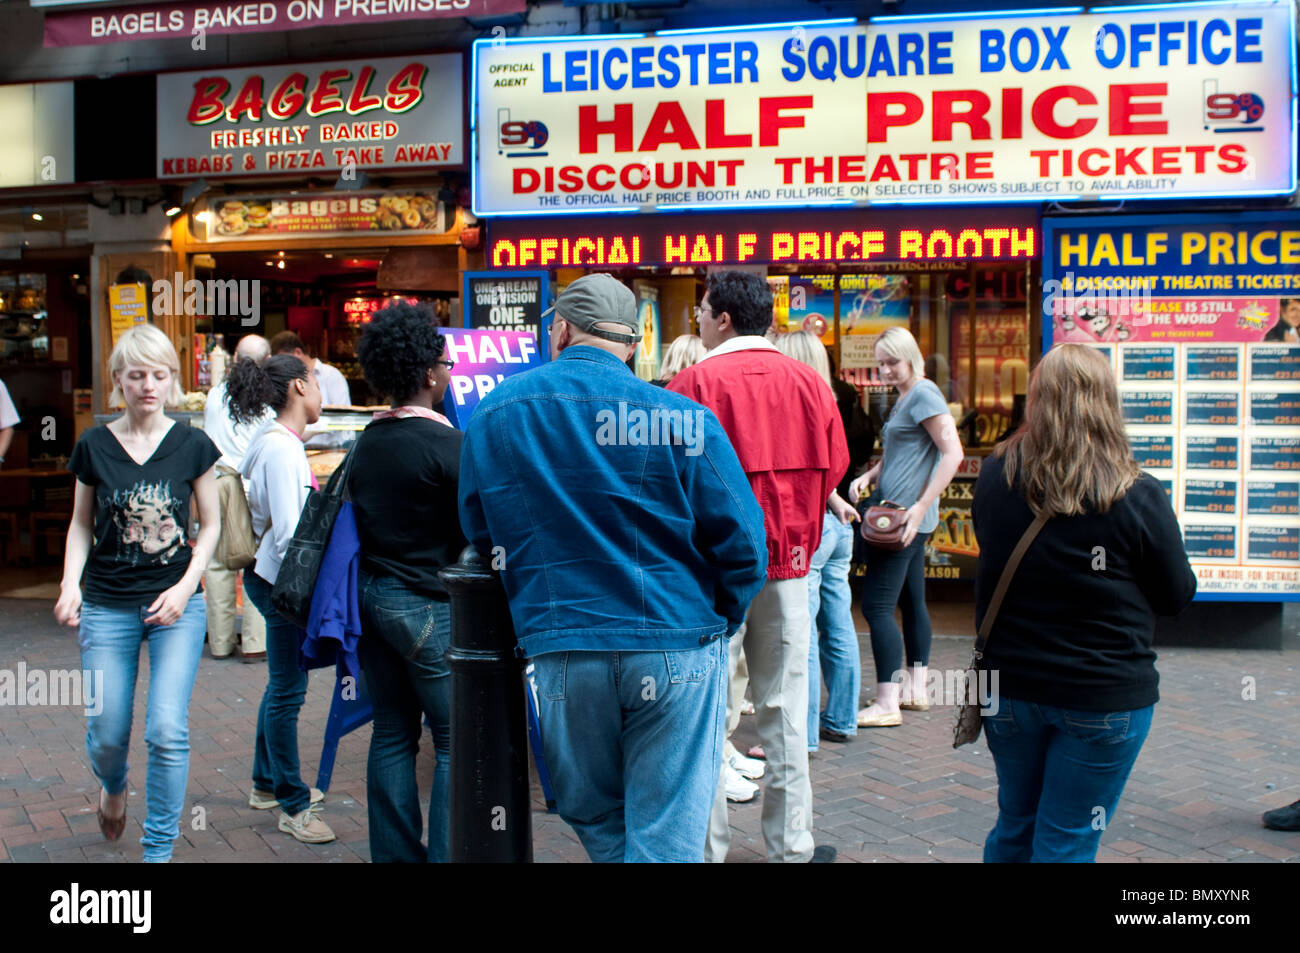 Box Office selling half price theatre tickets, Leicester Square, London, UK Stock Photo